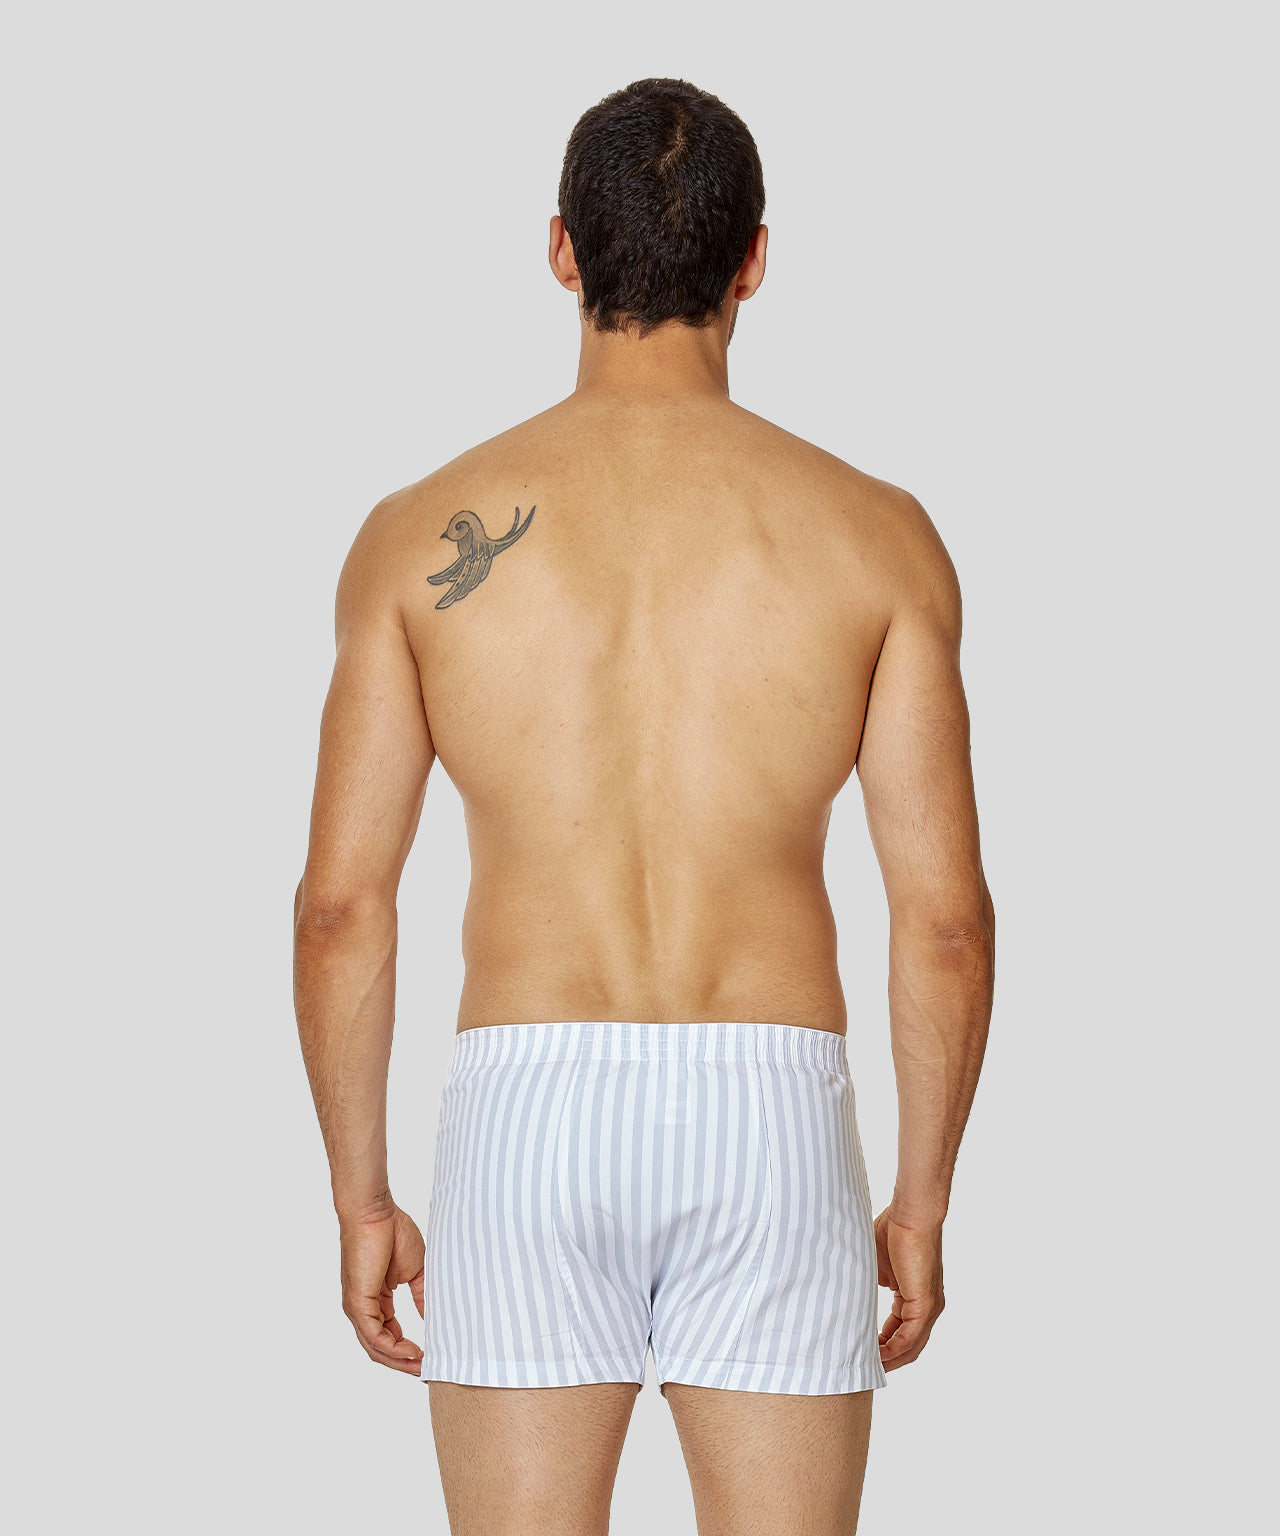 Boxer Shorts Vertical Stripes - arctic blue/white